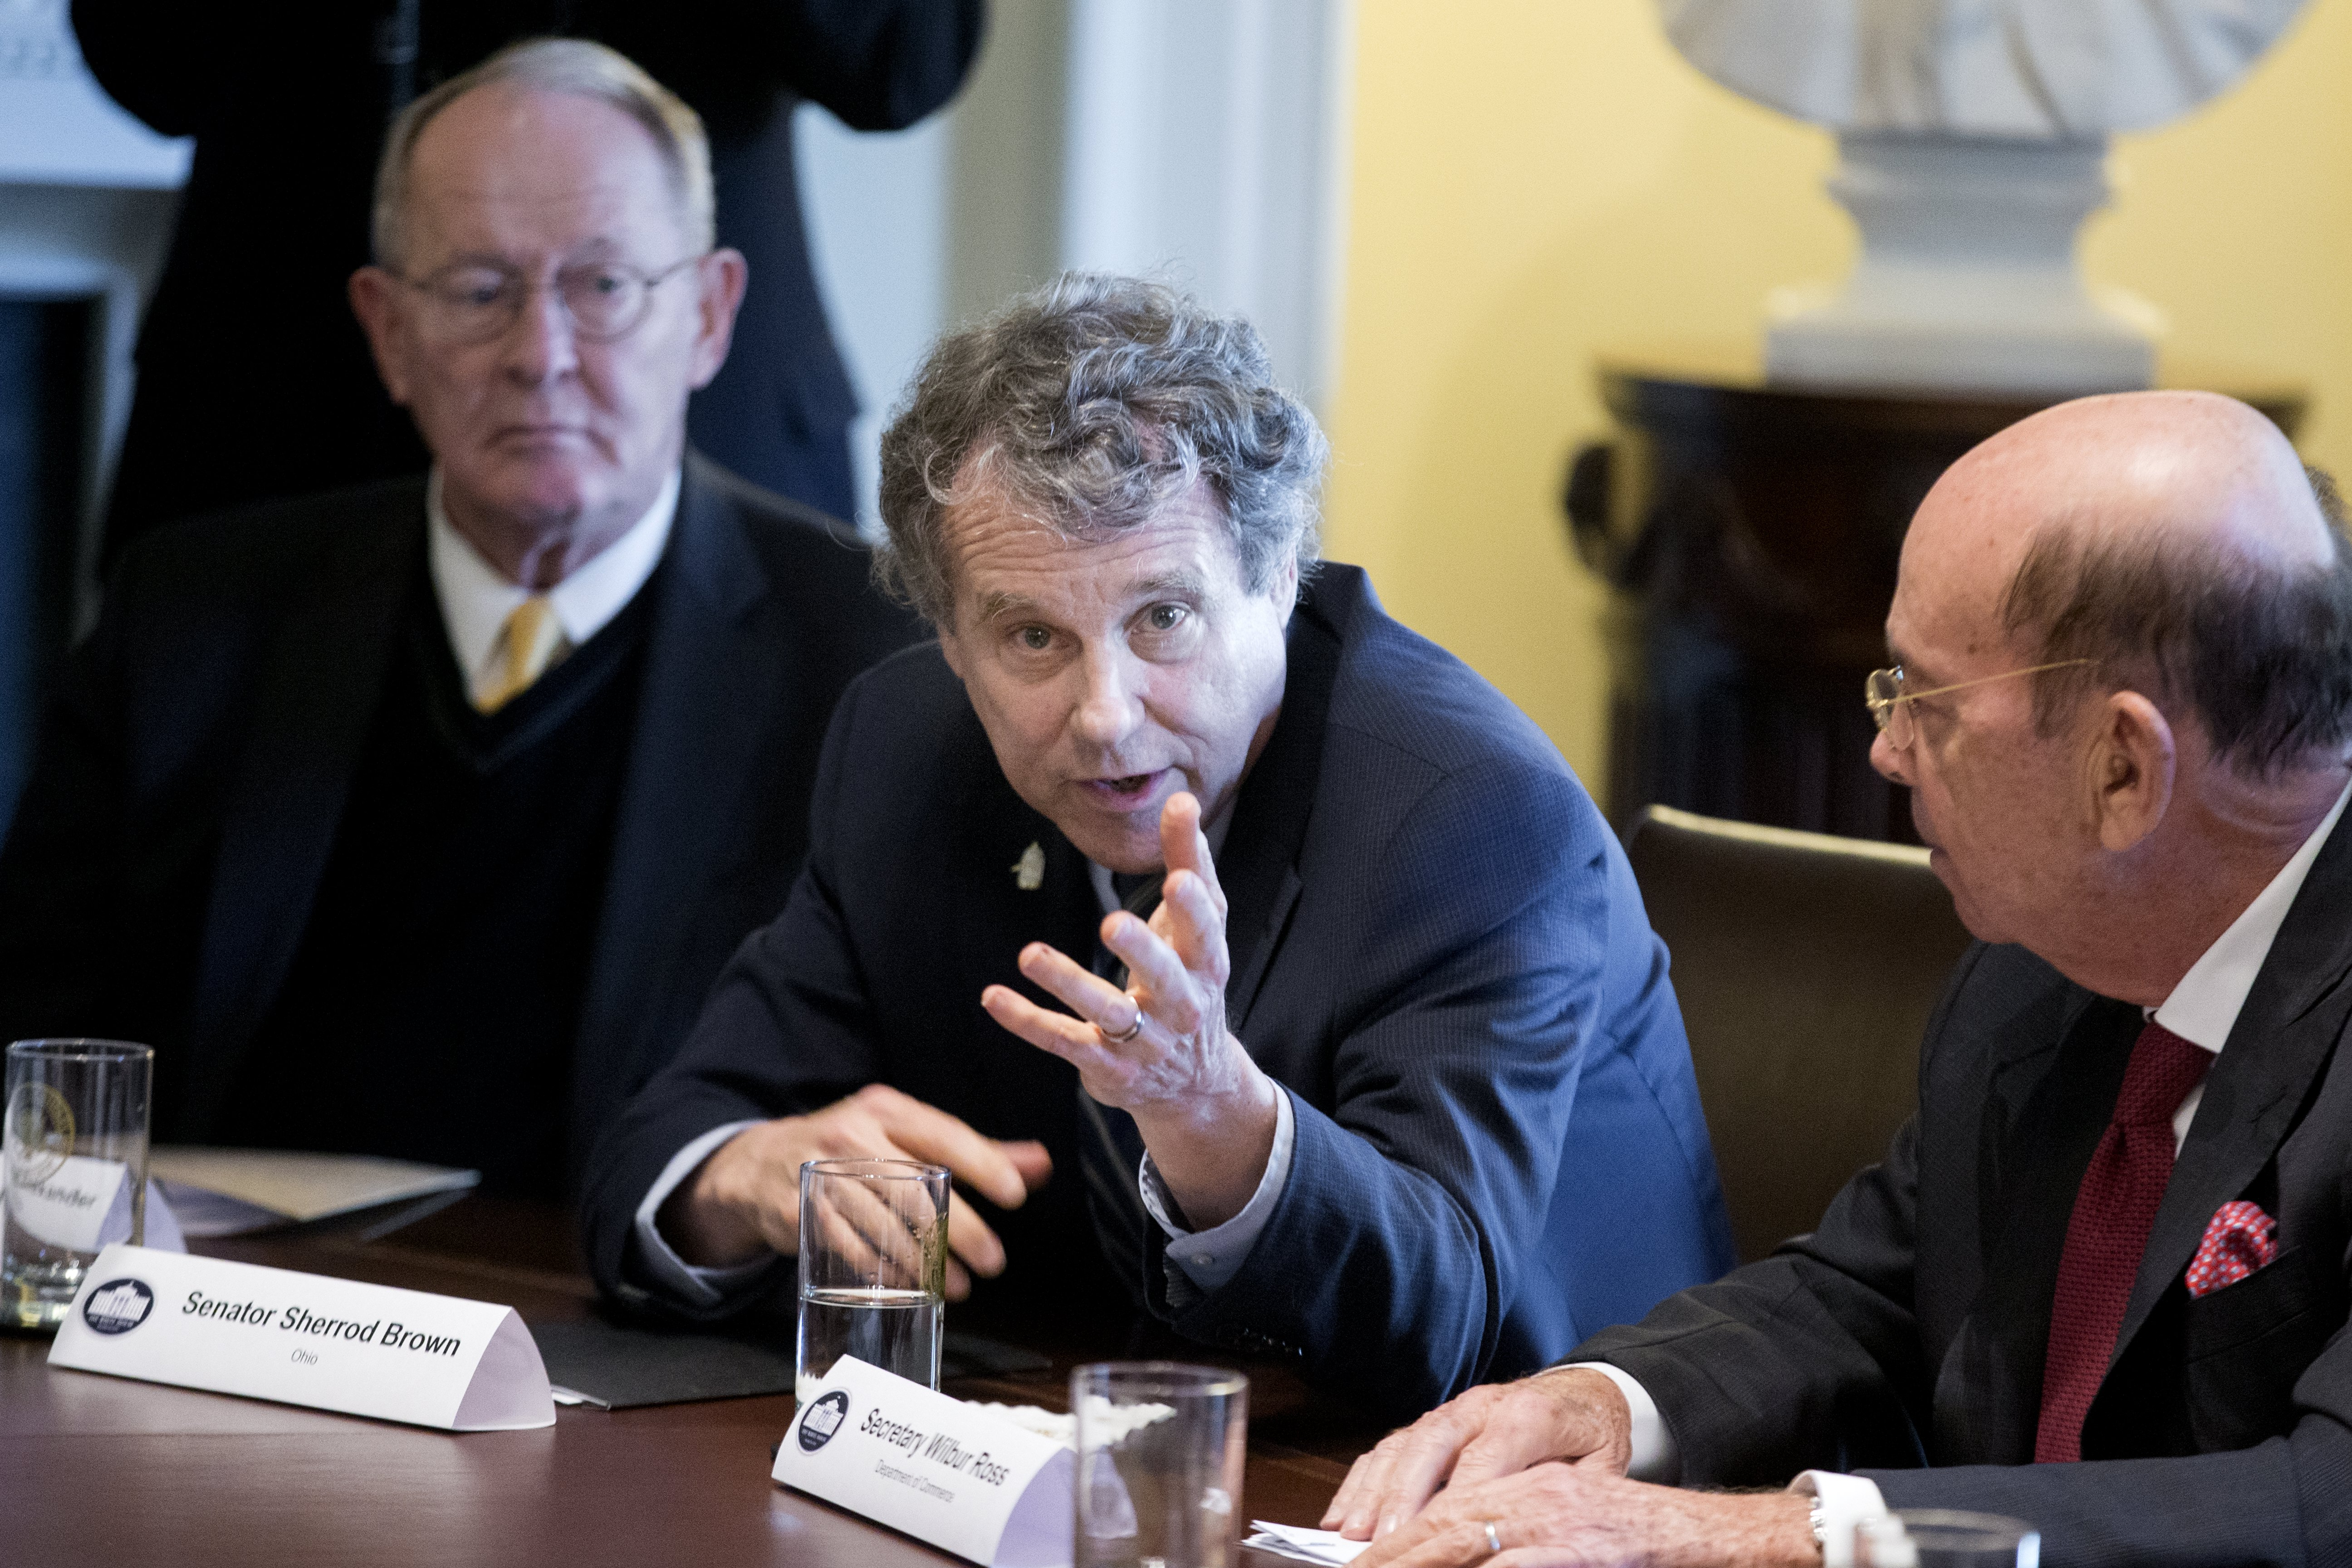 Democratic Senator from Ohio Sherrod Brown (C) speaks beside Republican Senator from Tennessee Lamar Alexander (L) and US Commerce Secretary Wilbur Ross (R) during a meeting on trade and the economy with members of Congress and US President Donald J. Trump (not pictured), in the Cabinet Room of the White House in Washington, DC, USA, Feb. 13, 2018. EPA-EFE